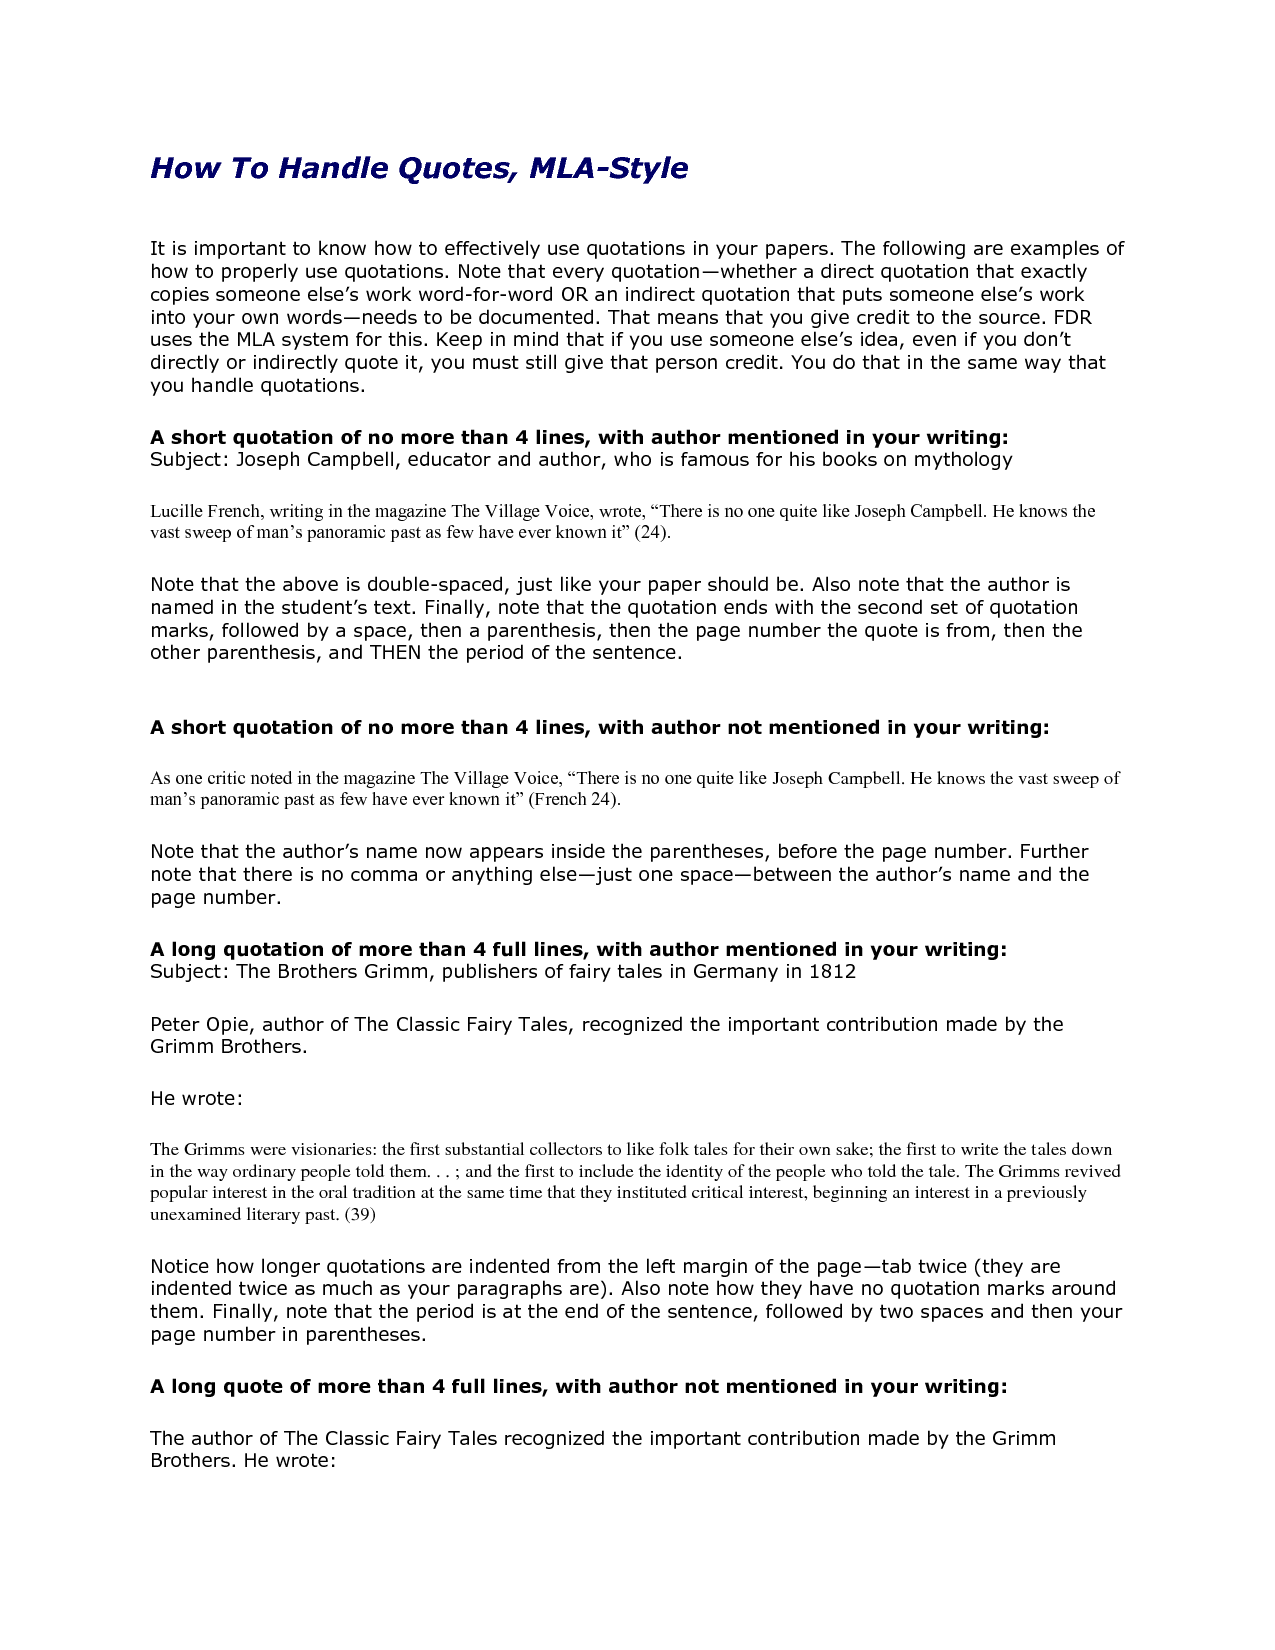 book in essay mla Mla style: handling quotations in your text general format an mla essay should be typed, double-spaced on standard-sized paper (85 x 11 inches) with margins of.